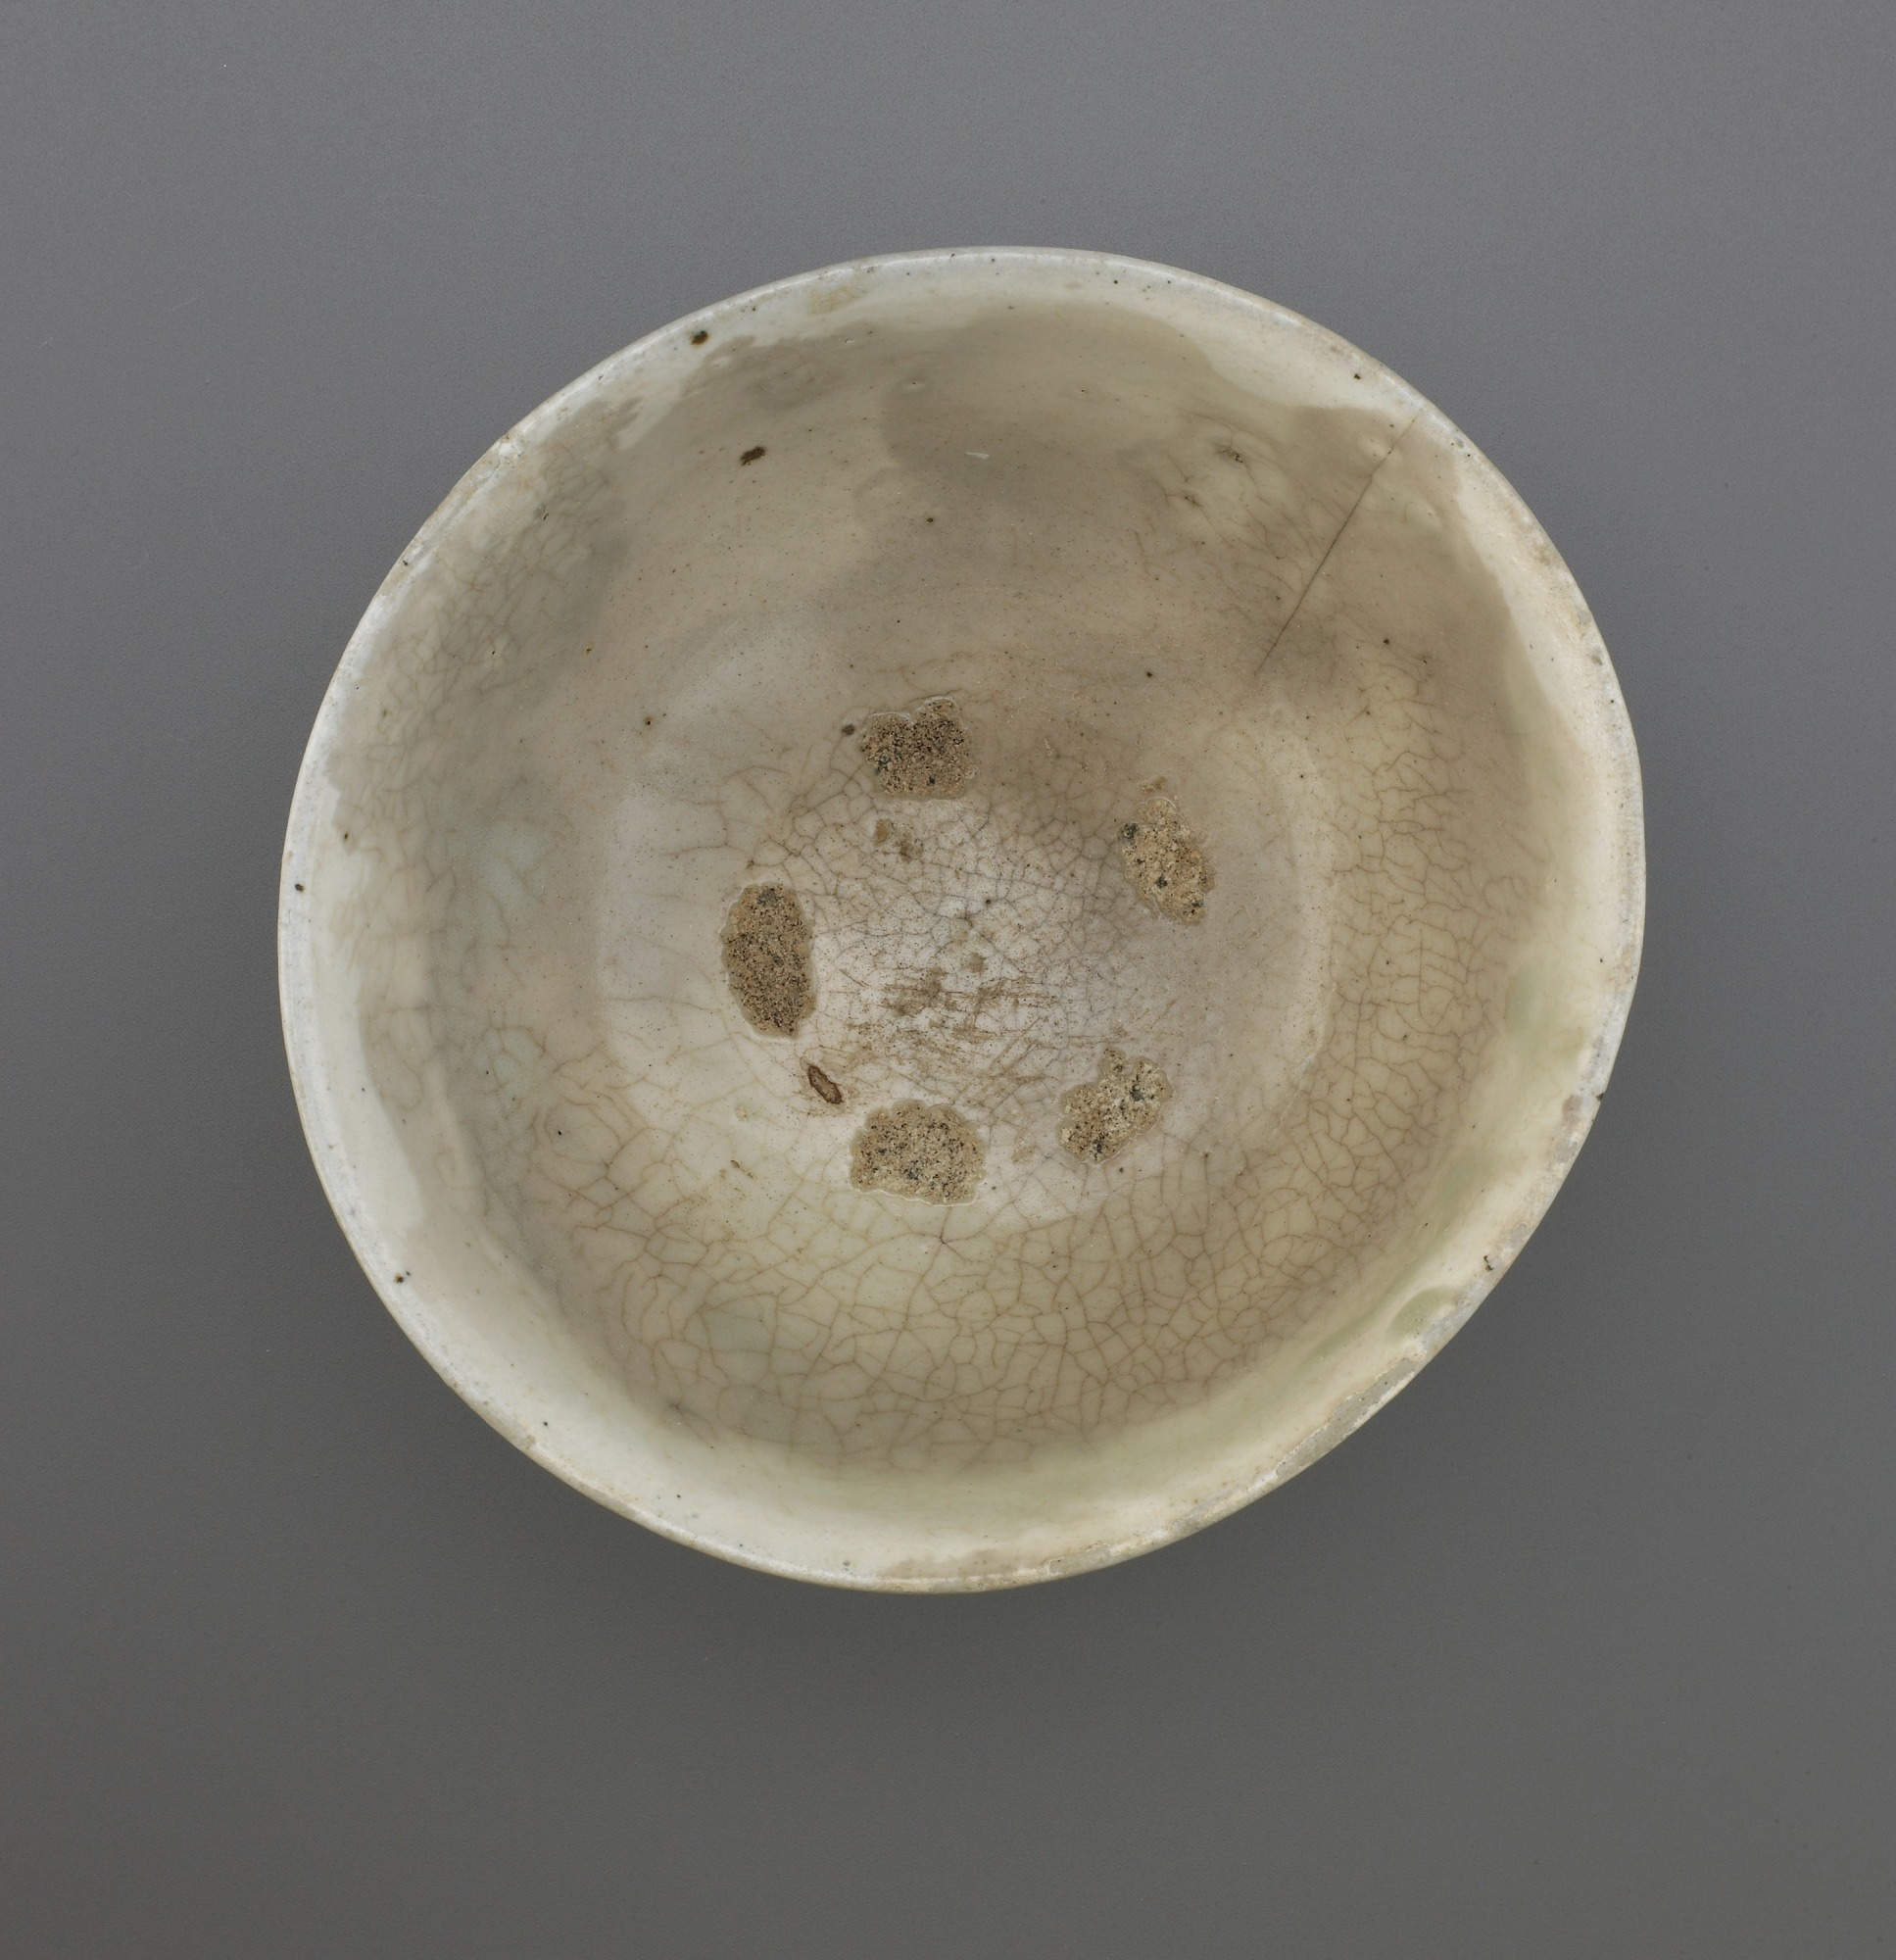 interior: Punch'ong ware bowl